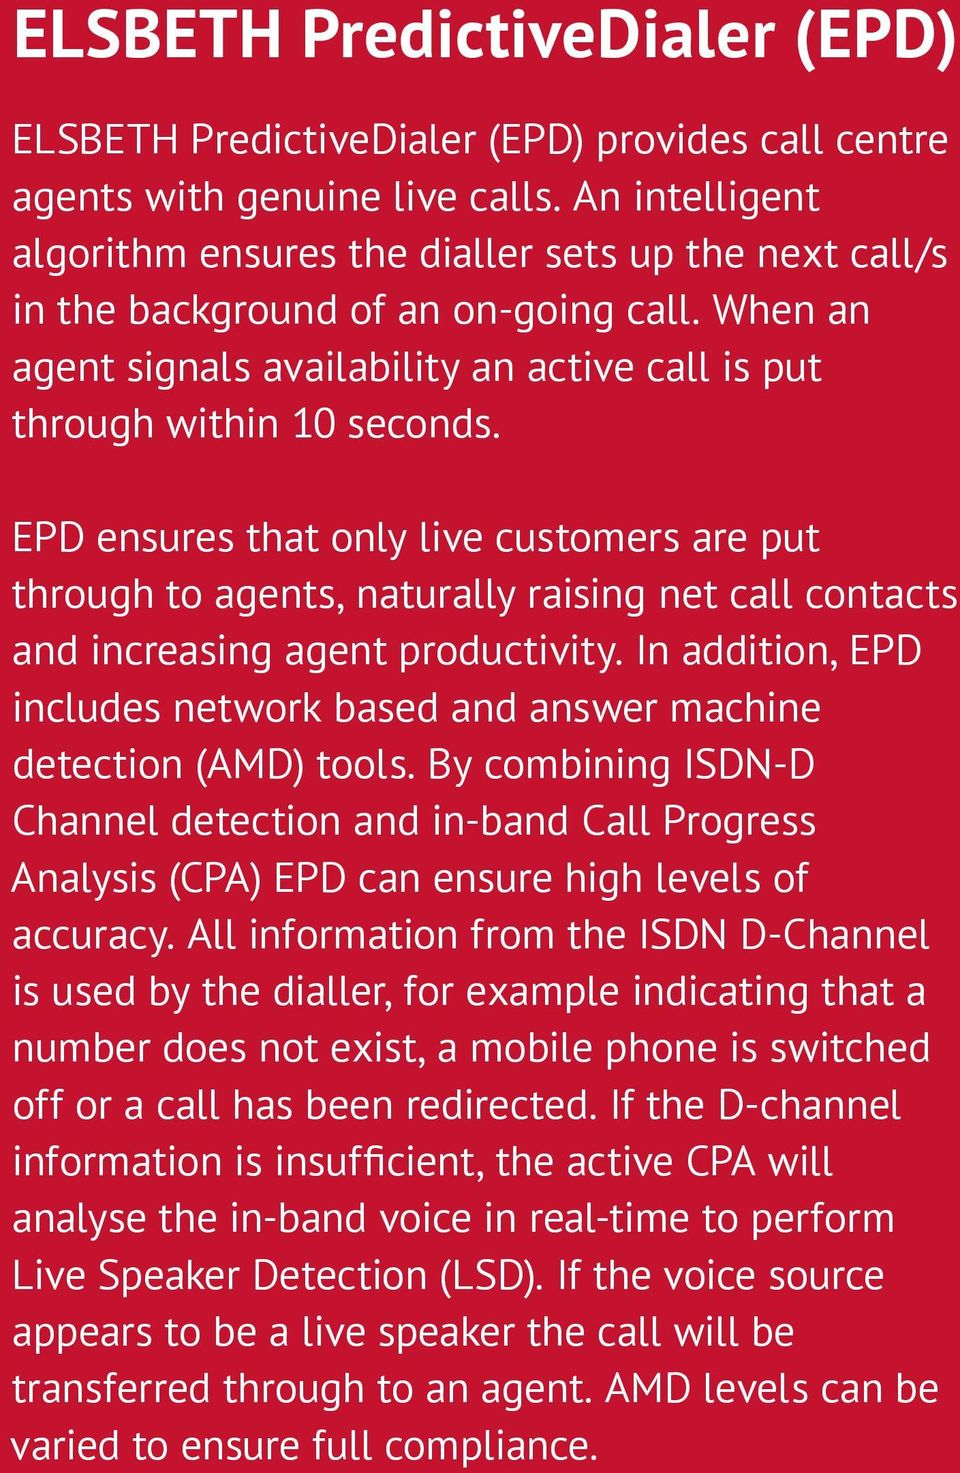 EPD ensures that only live customers are put through to agents, naturally raising net call contacts and increasing agent productivity.